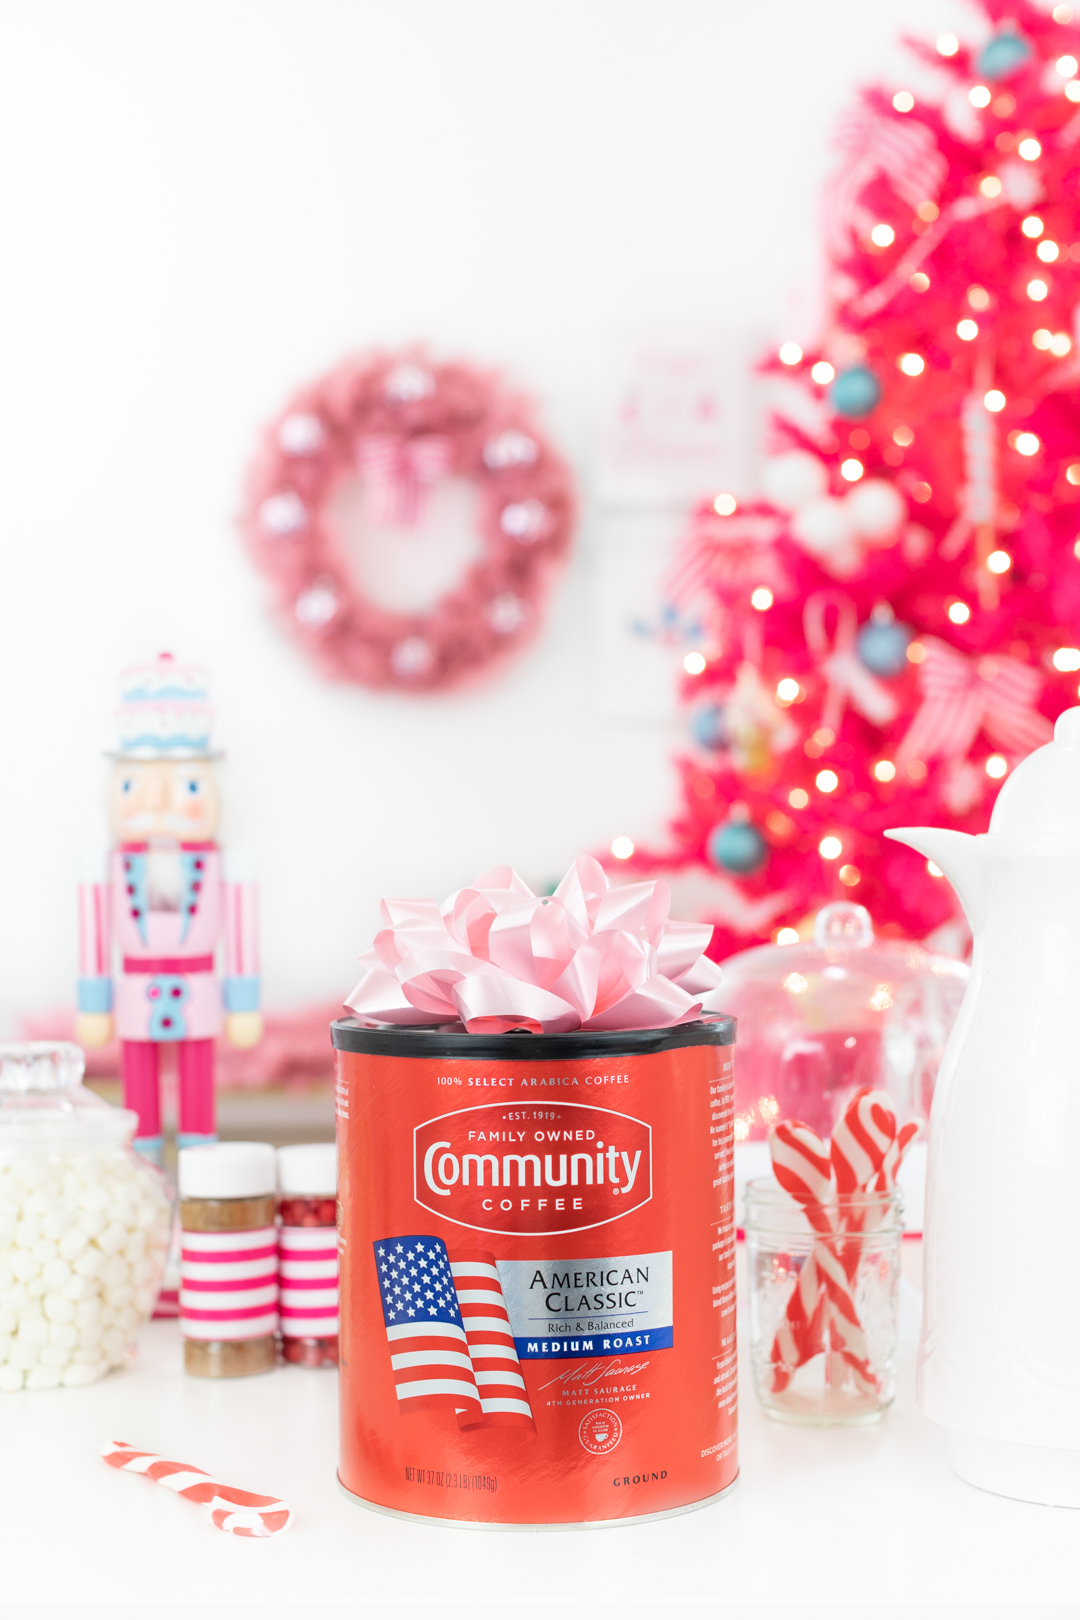 Community Coffee American Blend Canister. Walmart exclusive.